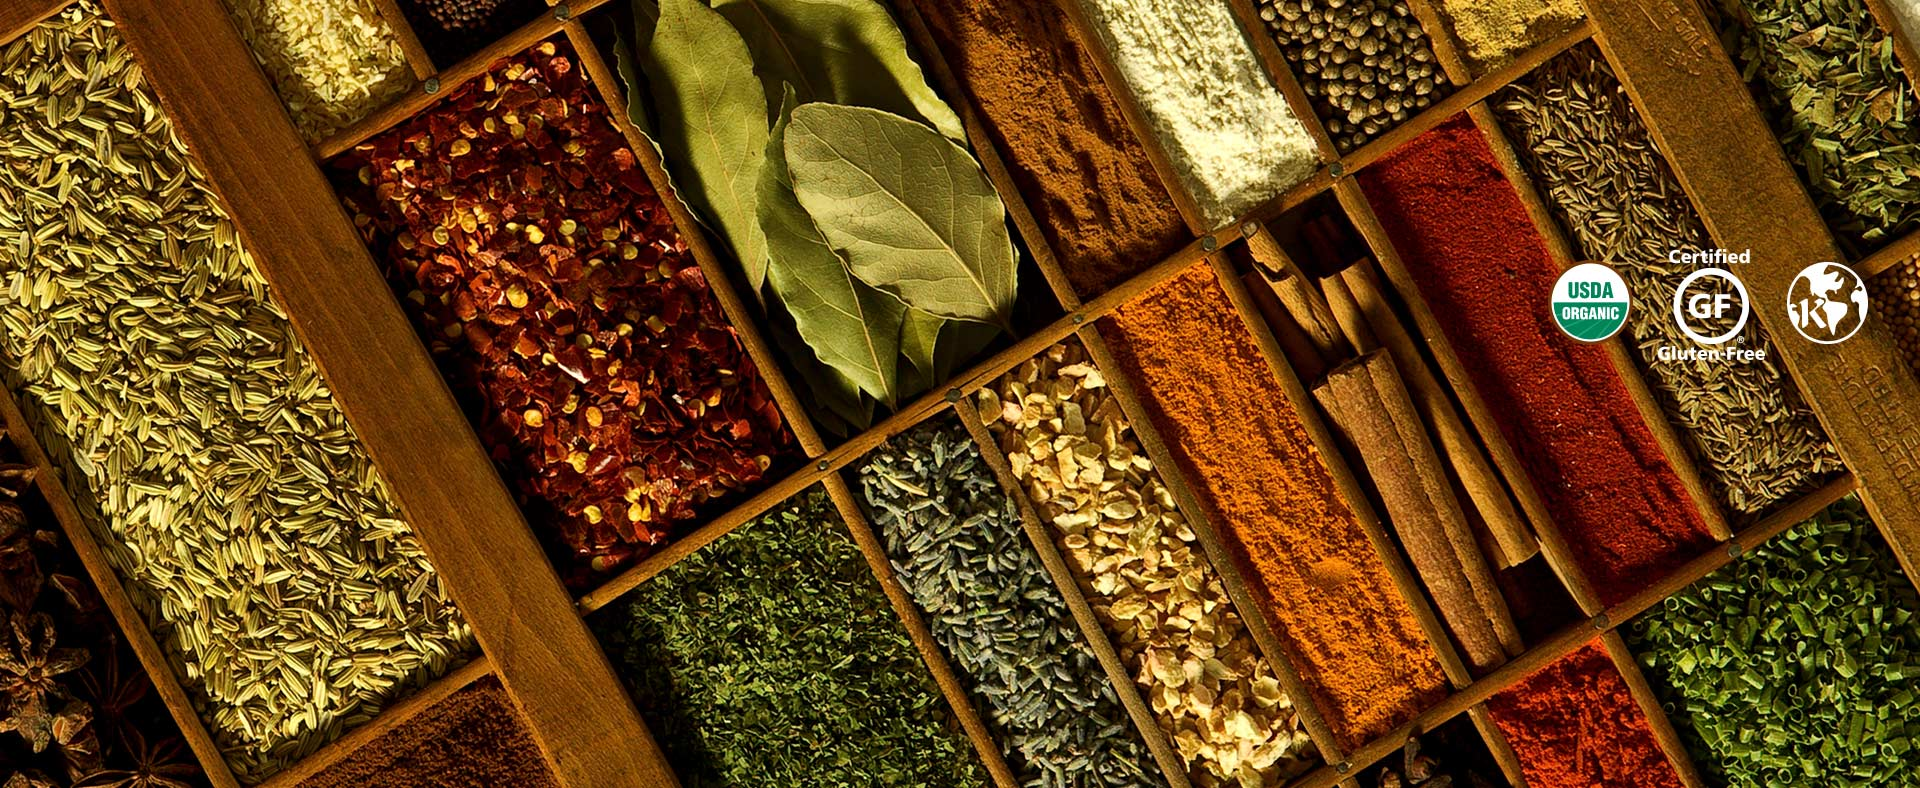 Smith & Truslow premium organic spices and herbs